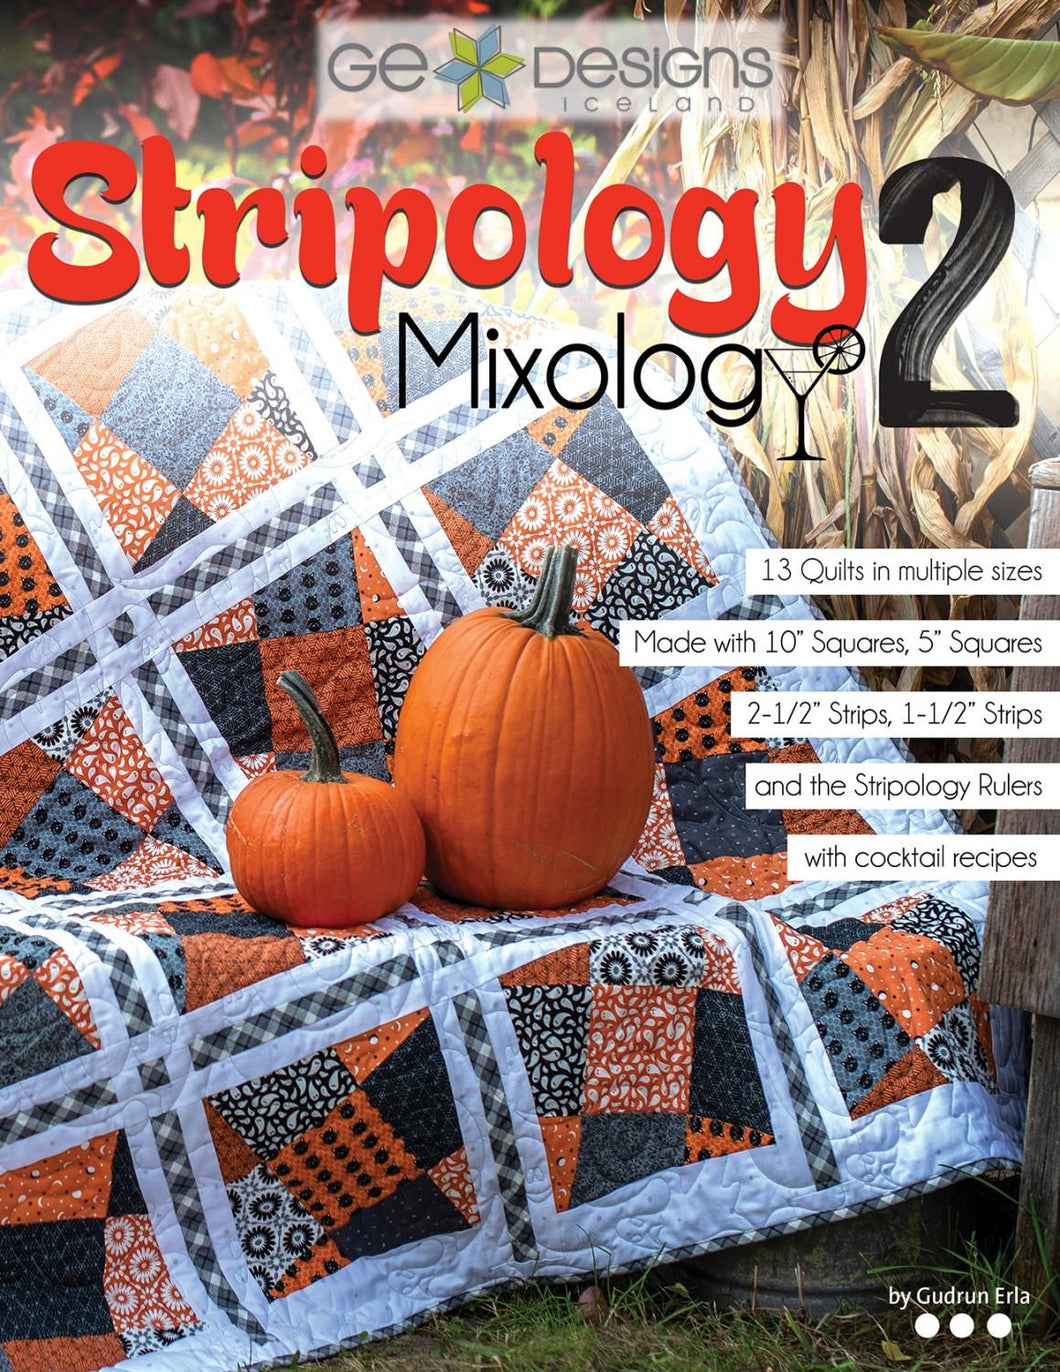 Stripology Mixology 2 by Gudrun Erla of GE Designs